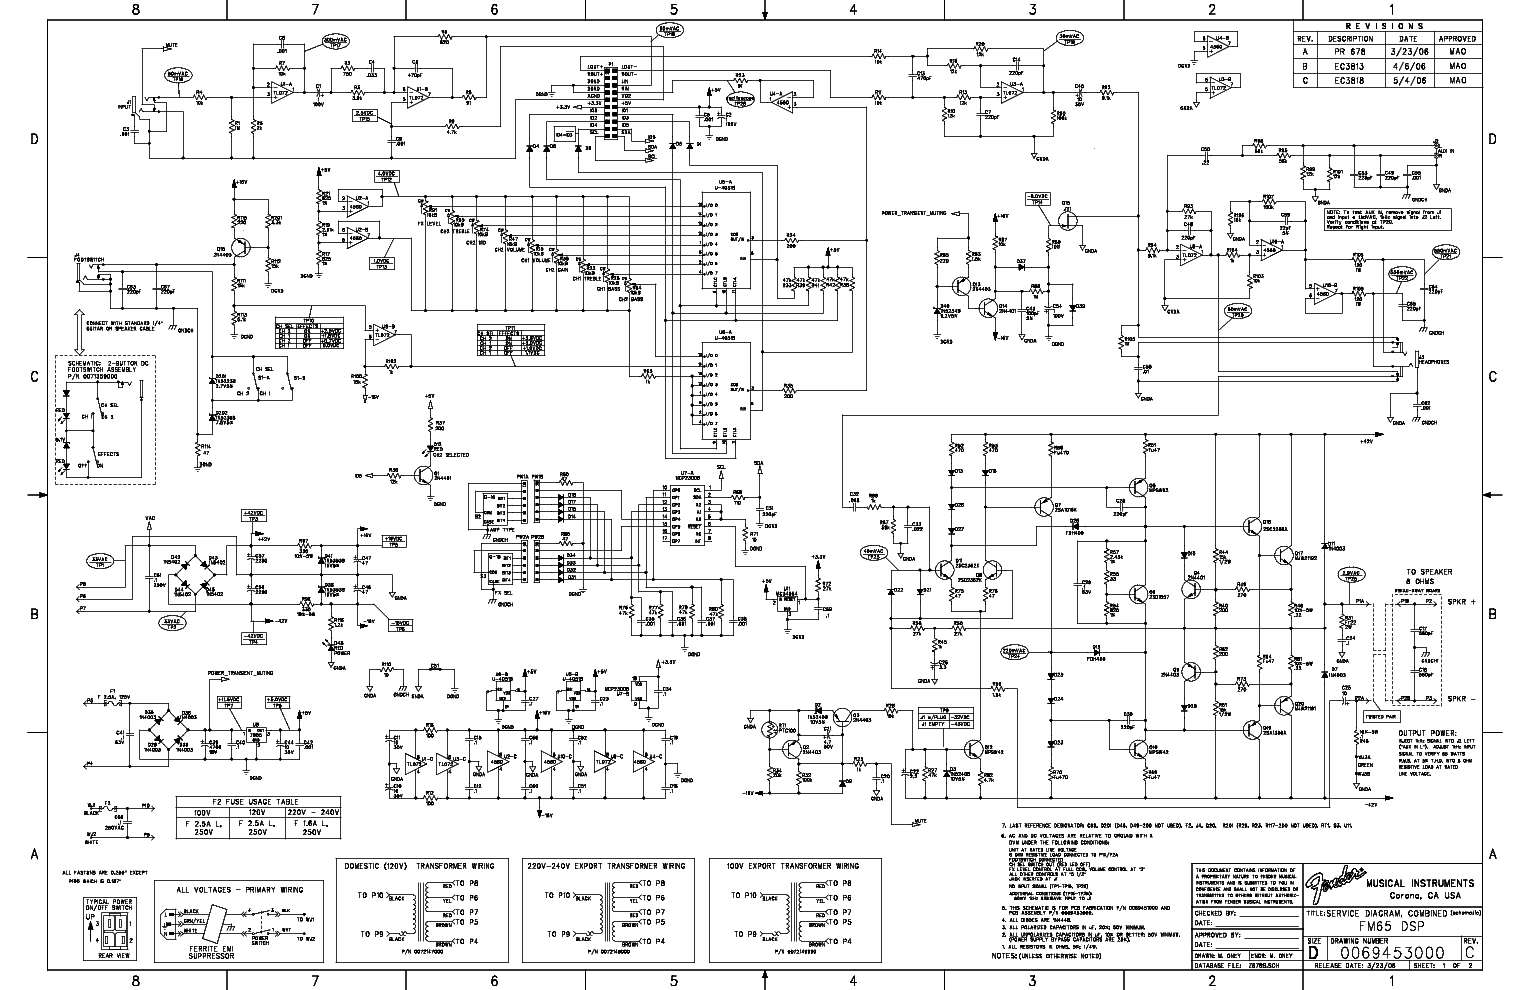 Fender Princeton Chorus Schematic Non Dsp - Download Wiring Diagrams on fender super reverb schematic, fender ultimate chorus specs, fender princeton 650 schematic, fender power chorus schematic, fender princeton 112 schematic, roland jazz chorus schematic, fender frontman 15g schematic, fender amp manuals, fender pro reverb schematic, fender deluxe 85 schematic, fender frontman 25r schematic, fender blues deluxe schematic, fender the twin schematic, princeton reverb schematic, fender princeton 65 schematic, fender hot rod deville schematic, fender amp schematics, fender m 80 manual, fender frontman 212r schematic, fender champ schematic aa764,